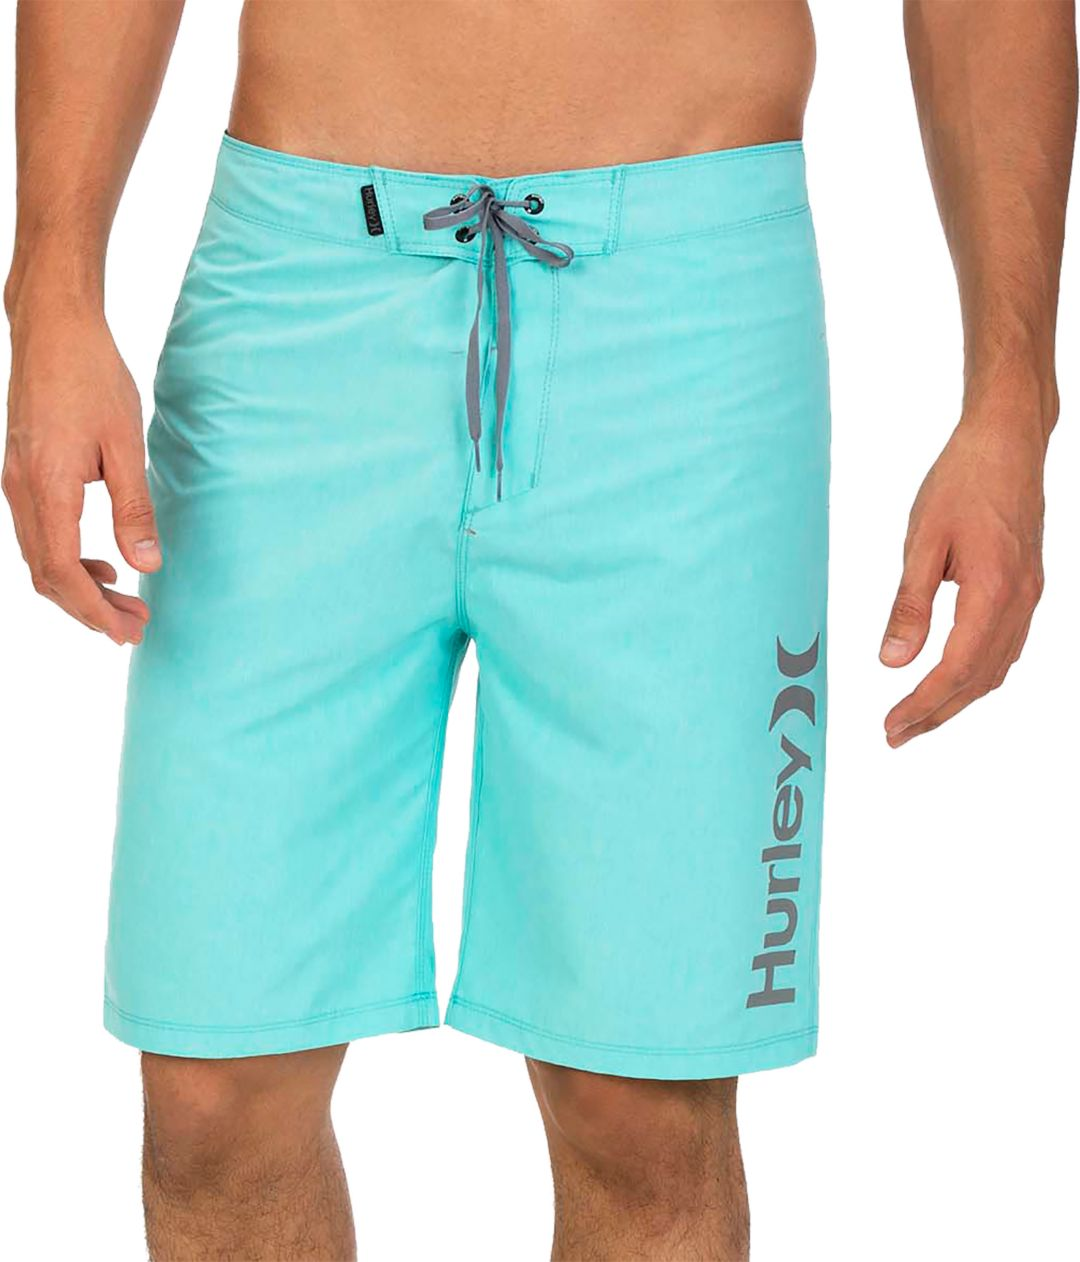 "d9219c8ecf Hurley Men's One & Only Heather 21"" Board Shorts 